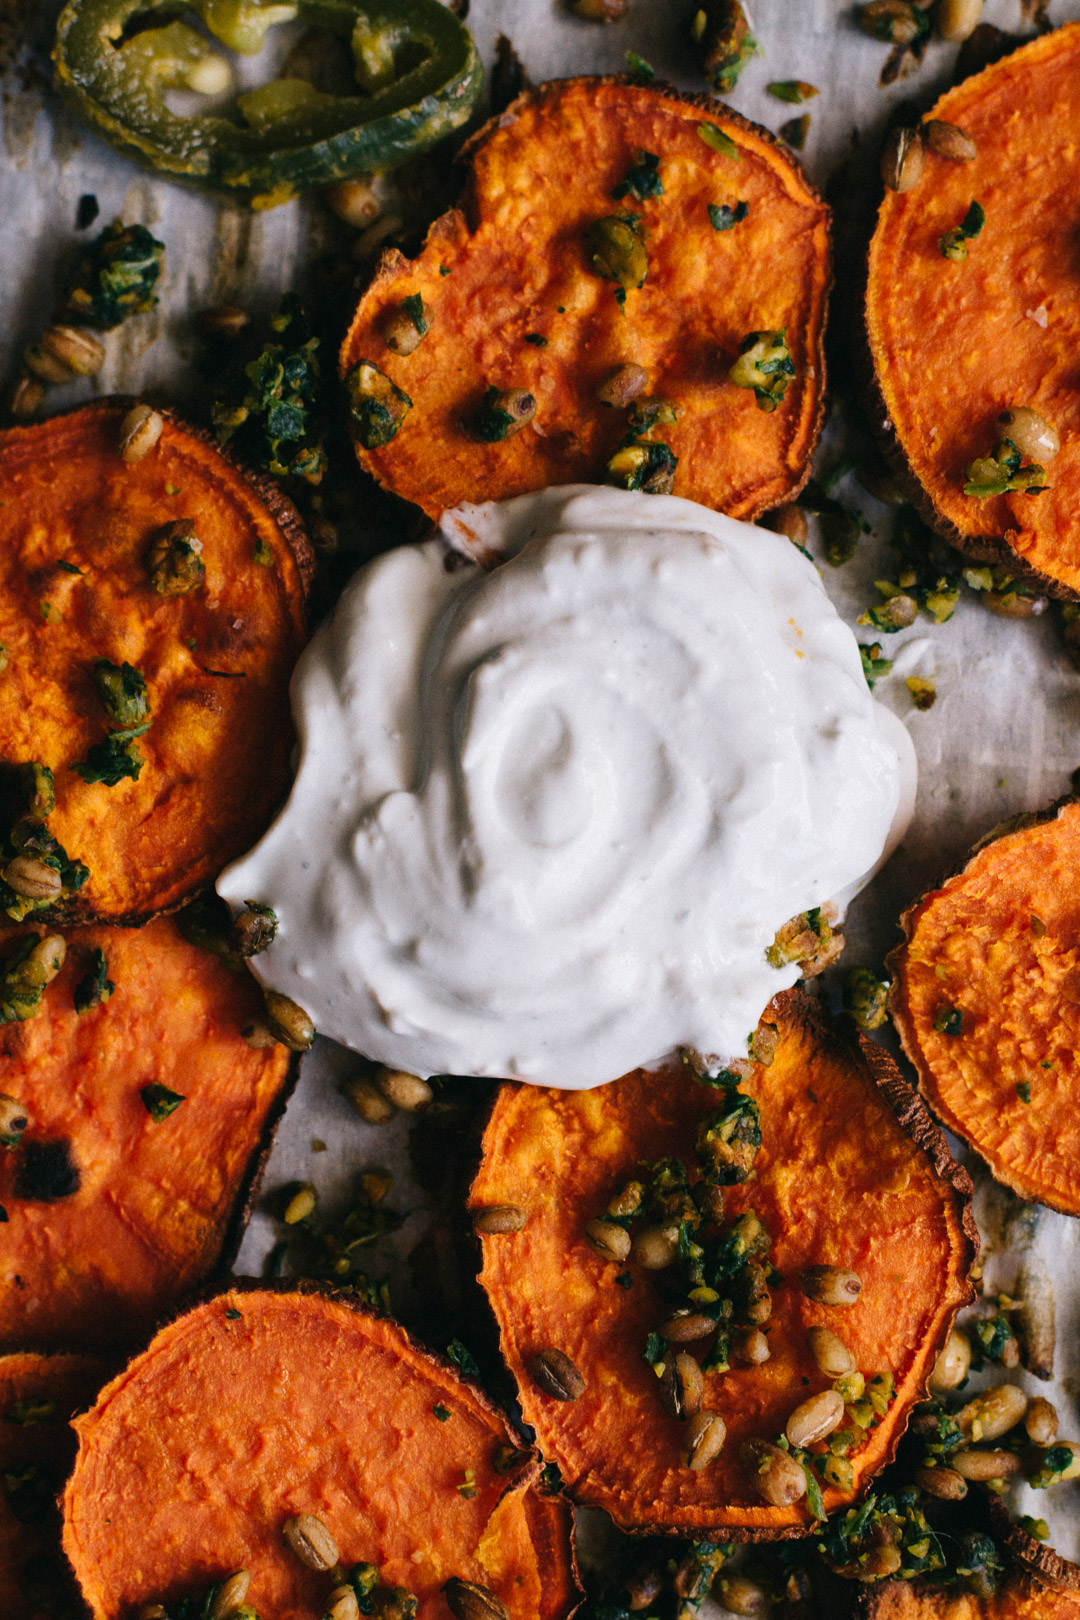 Close up overhead shot of a dollop of sour cream blue cheese dip on a parchment paper covered baking sheet surrounded by sweet potato crisps, gremolata, barley, and jalapeño slices.